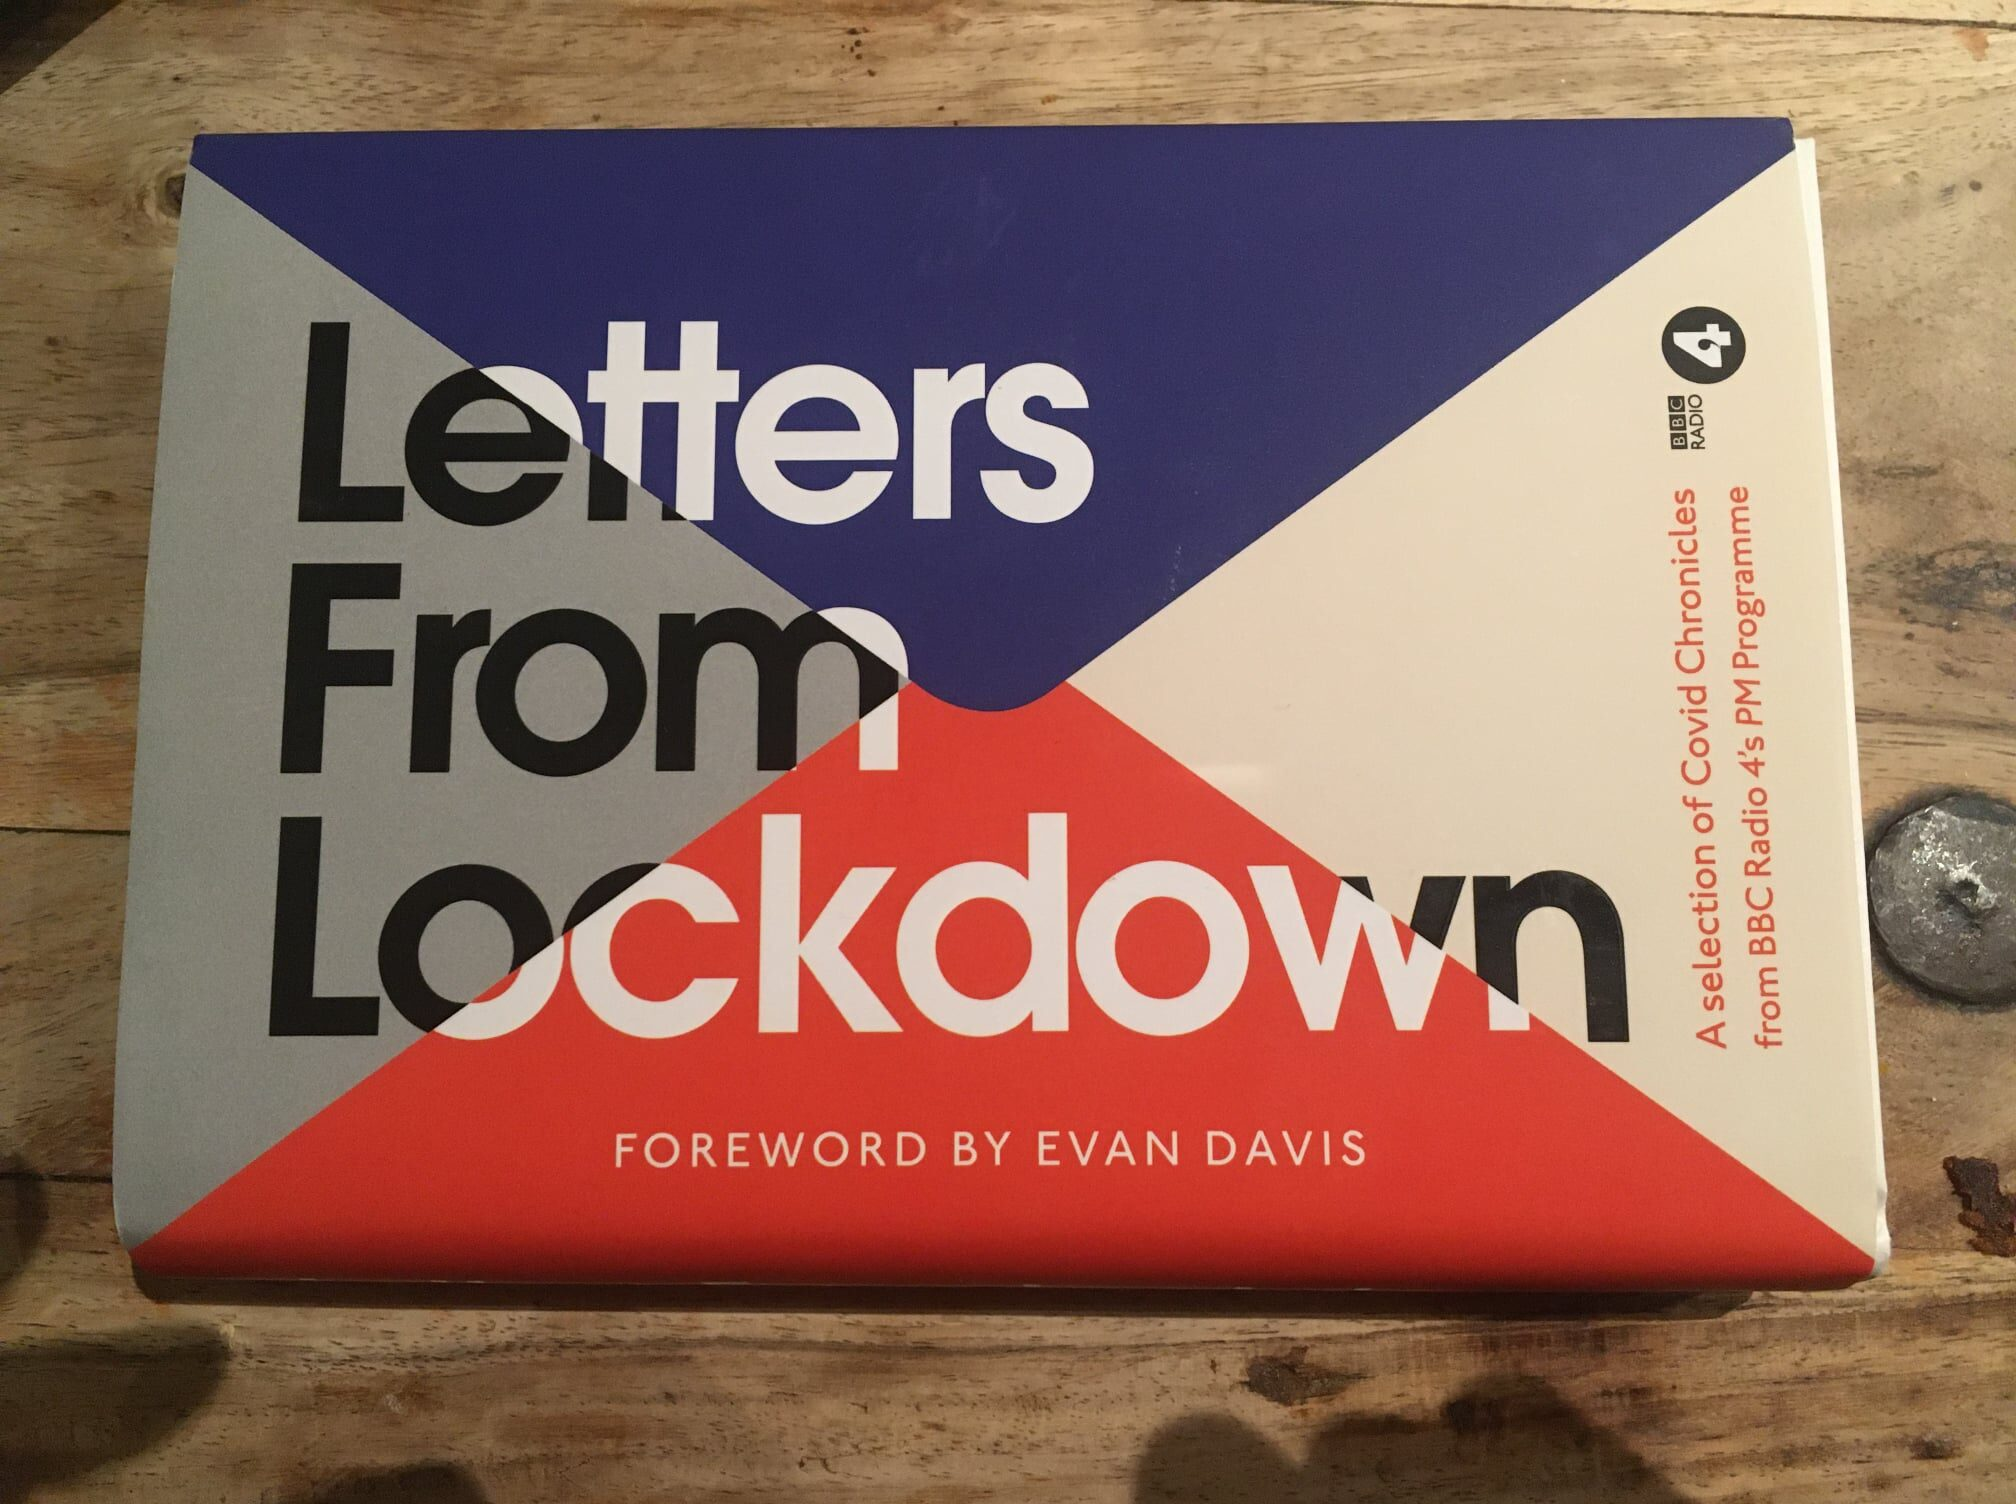 Letters from Lockdown2